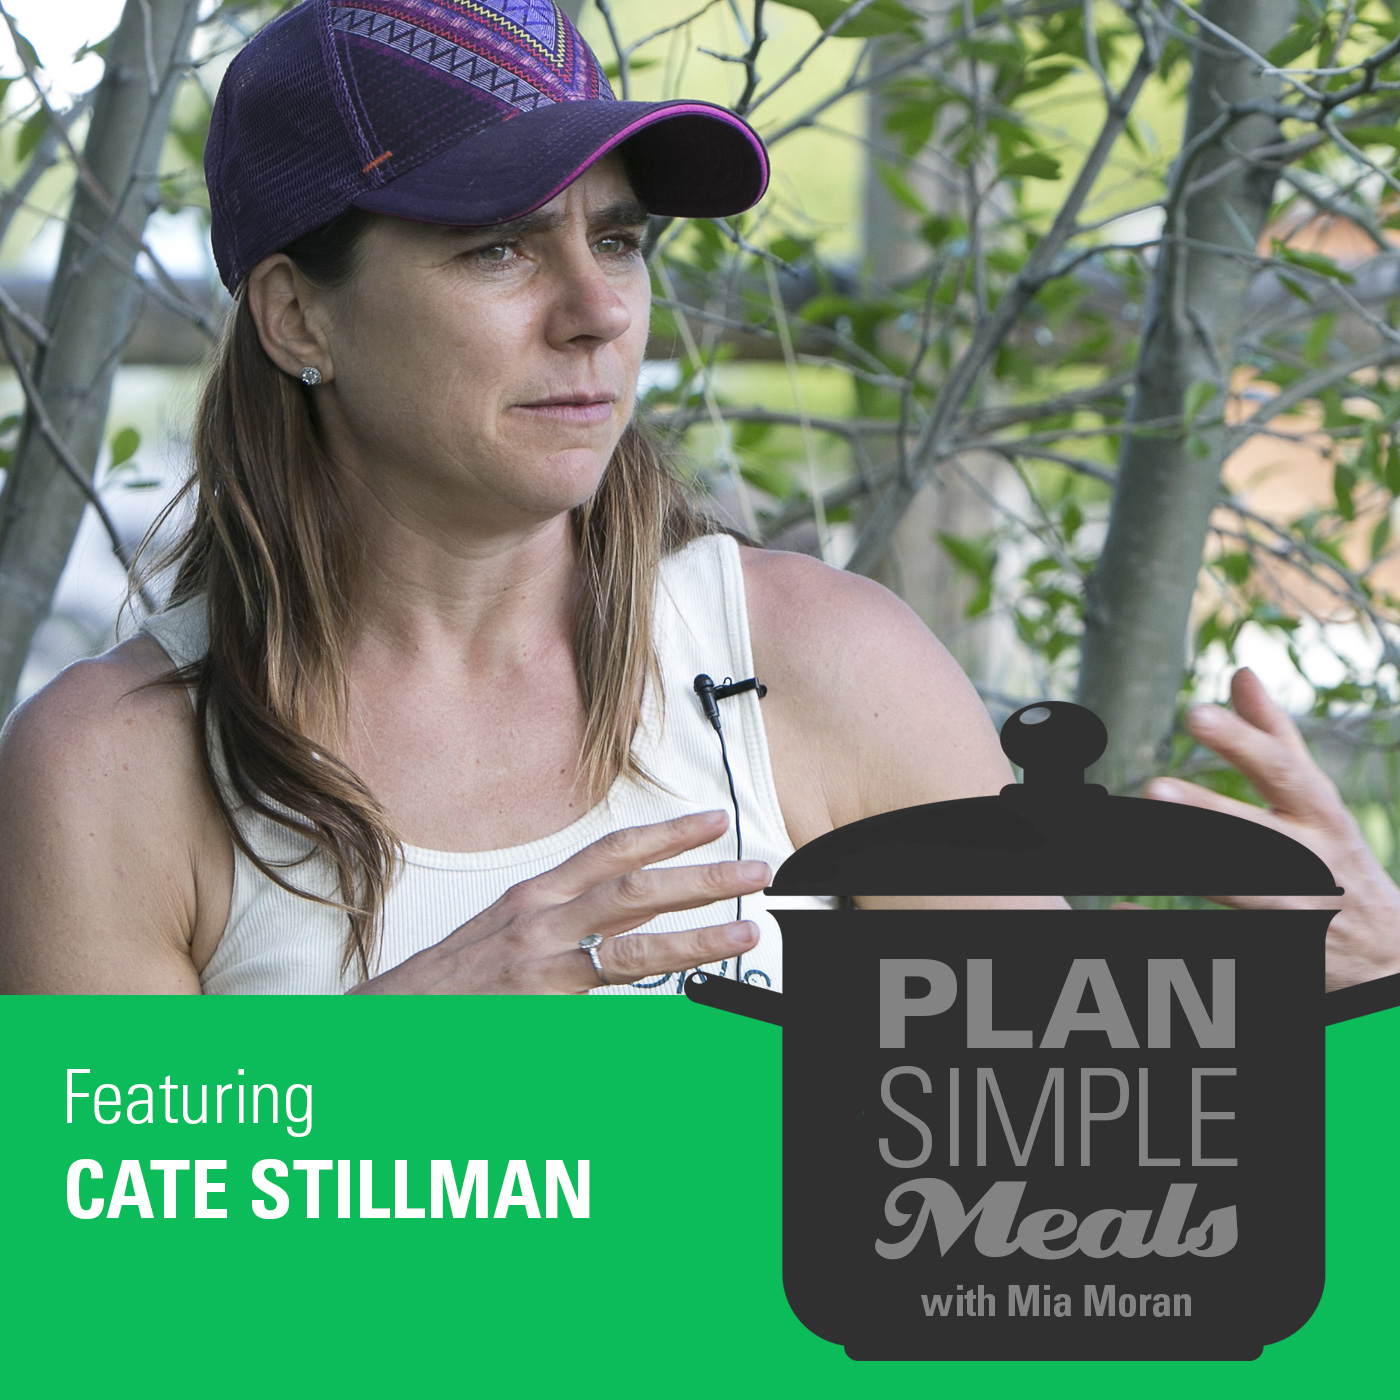 Structure Precedes Evolution With Cate Stillman